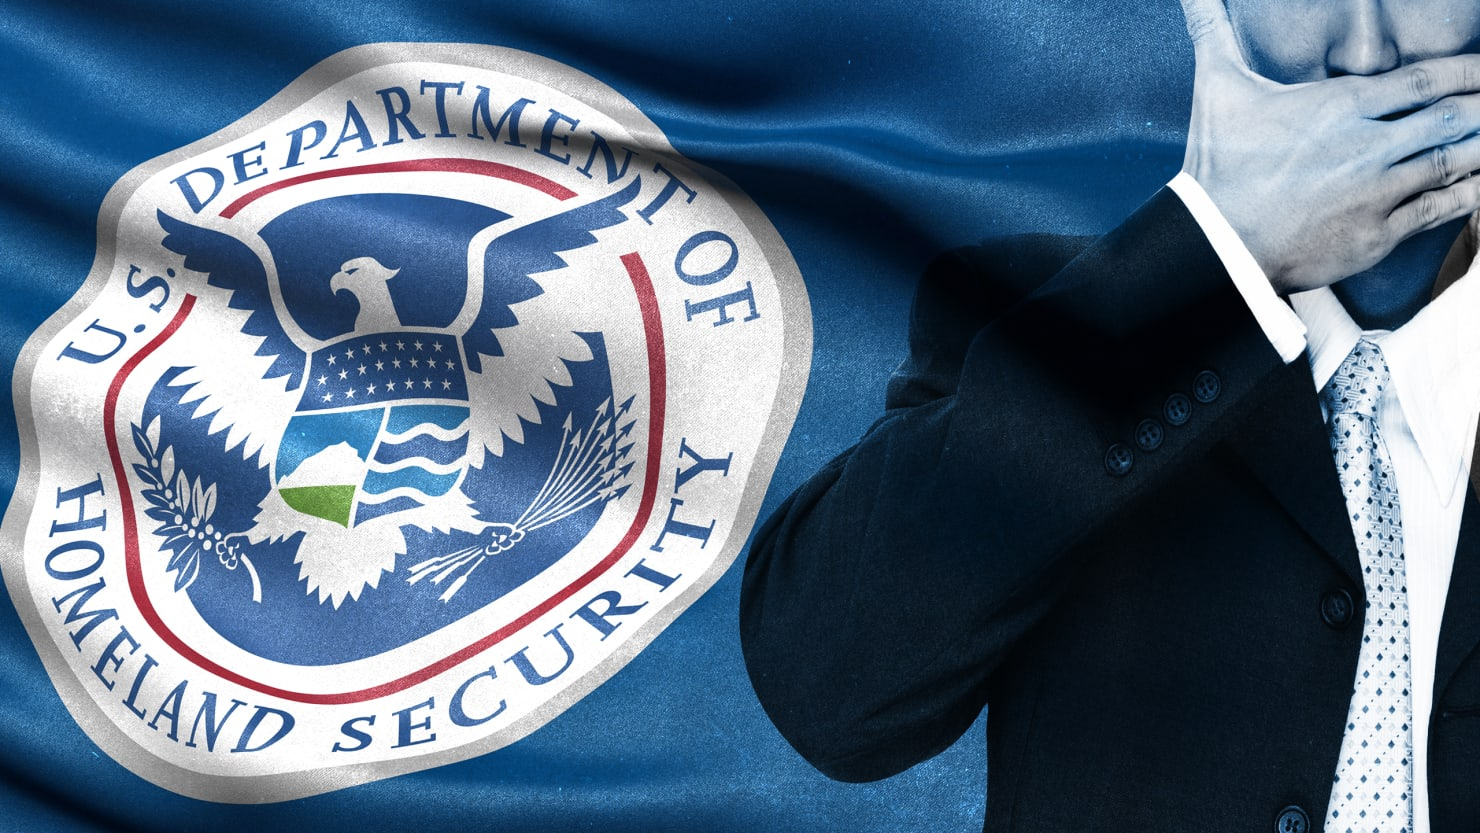 agencies that make up the department of homeland security